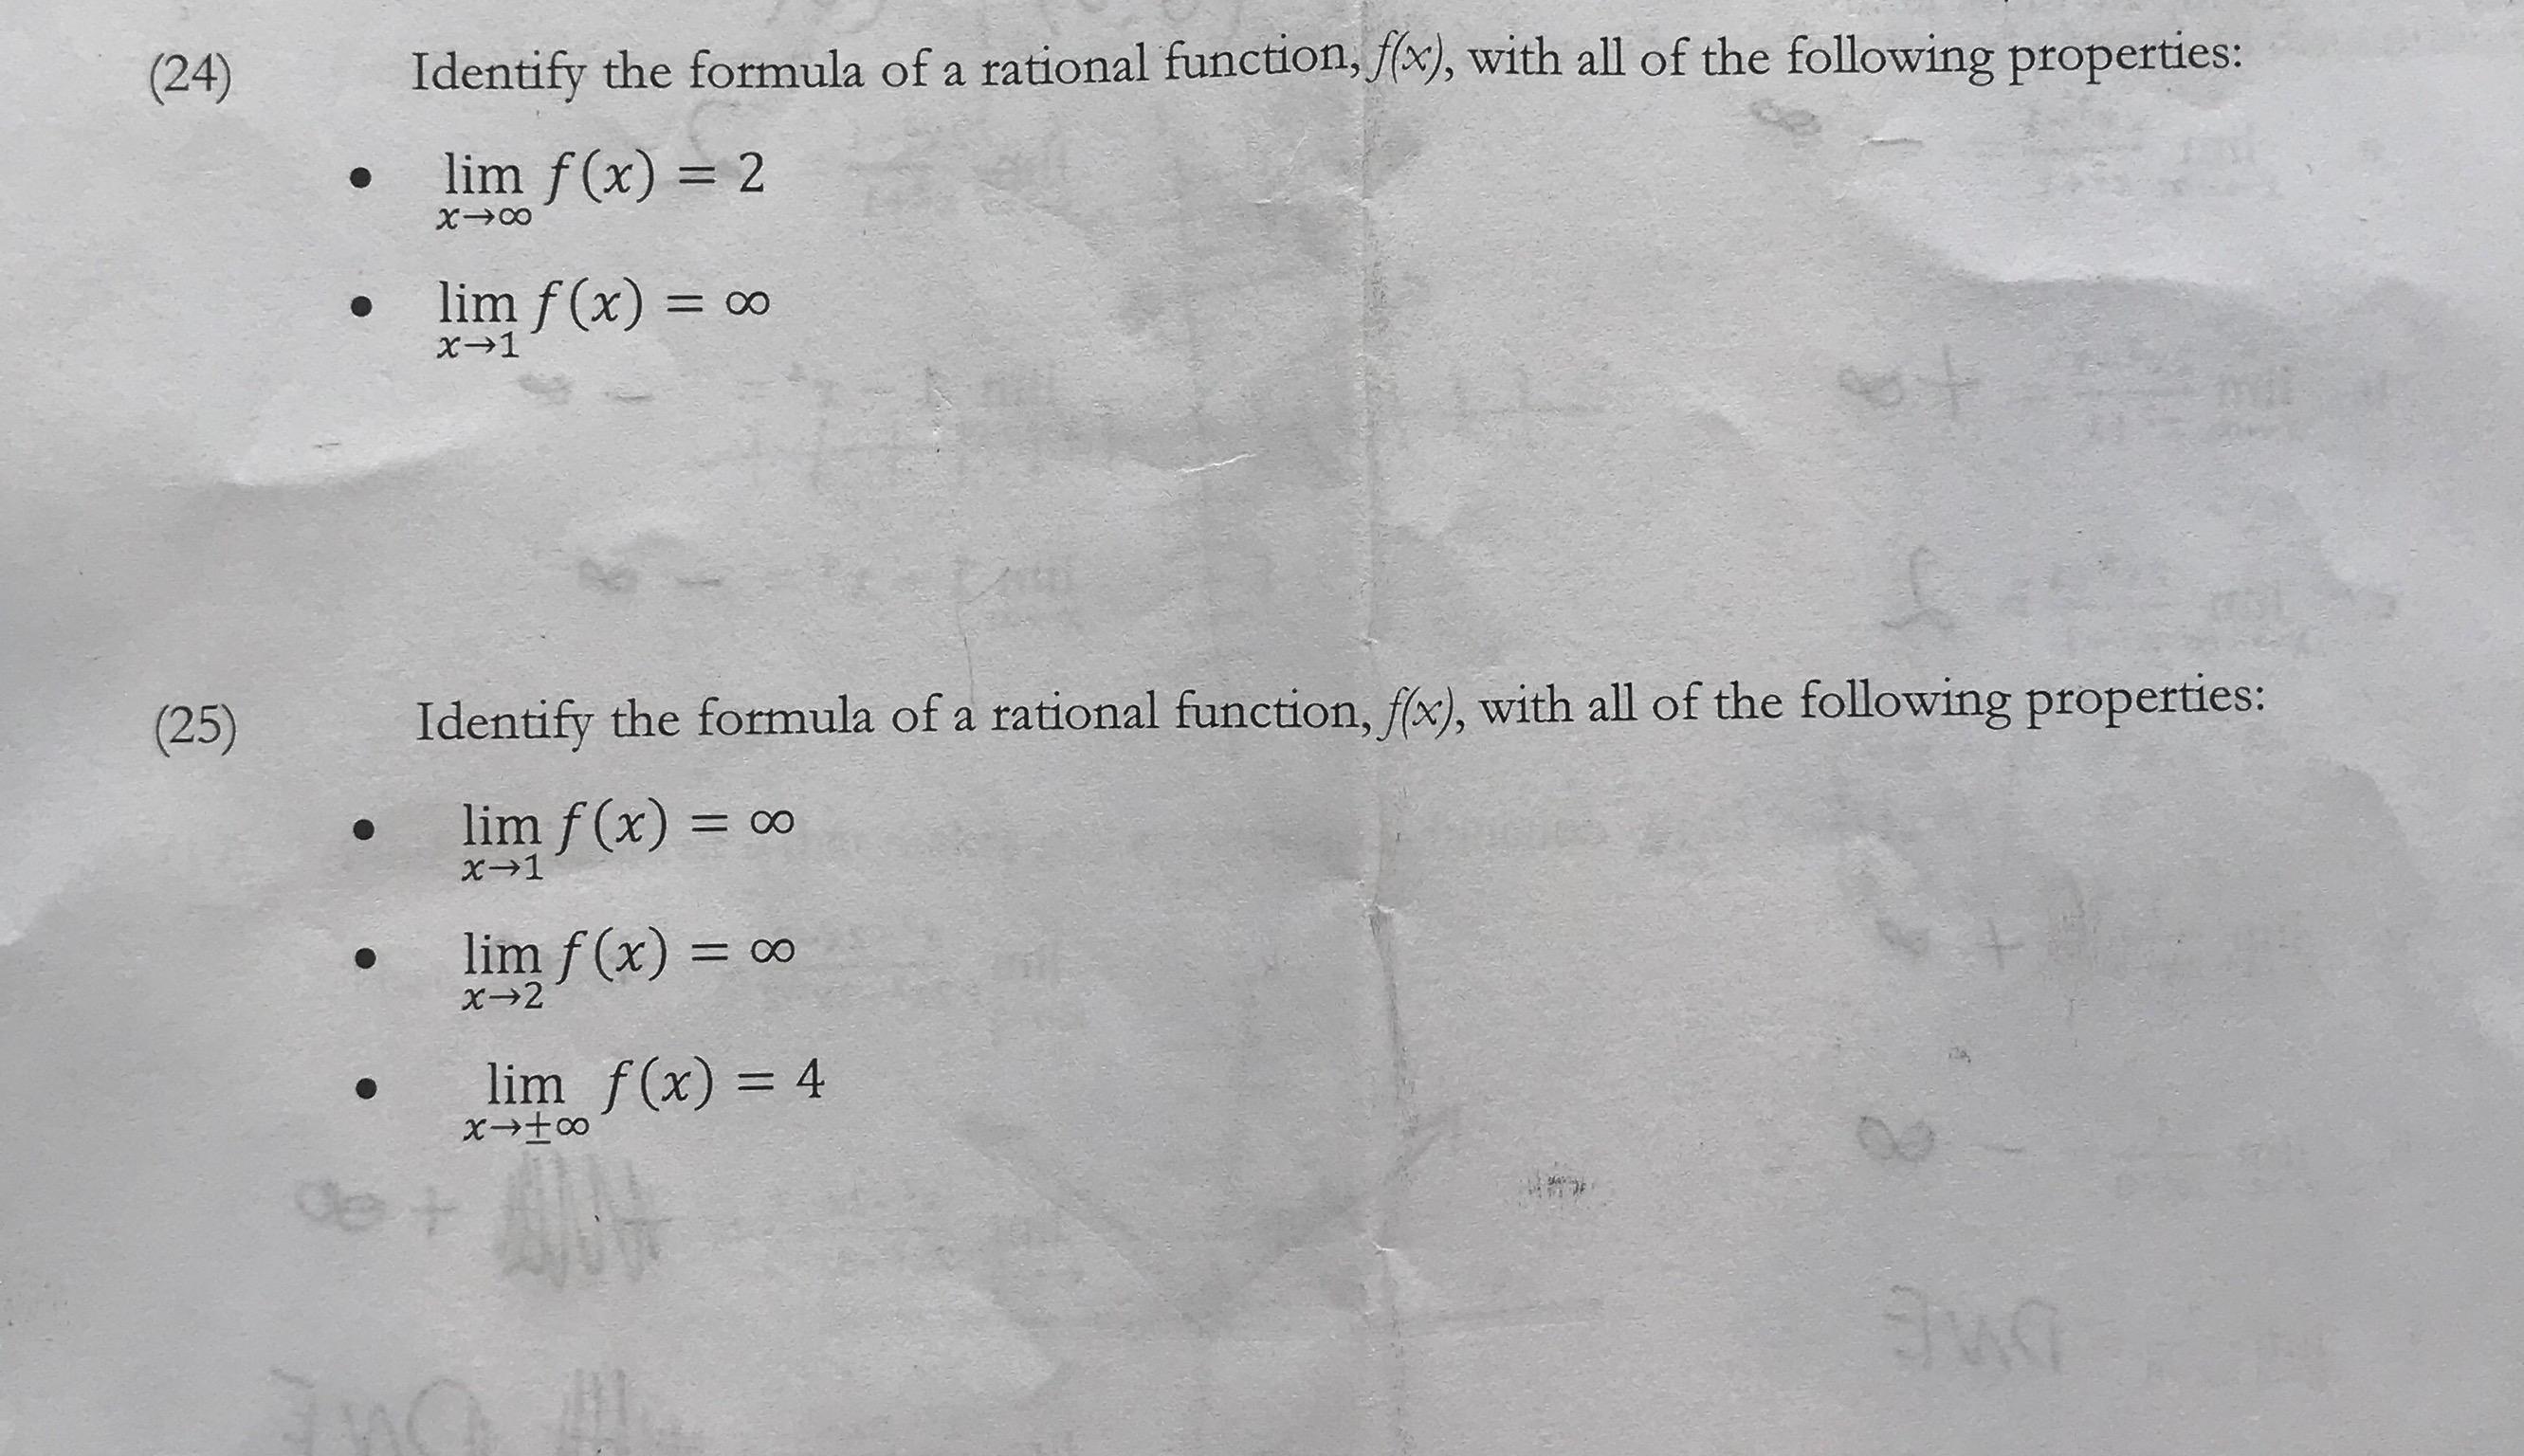 Identify the formula of a rational function, fx), with all of the following properties: (24) lim f(x) 2 lim f (x) - OO x1 mt Identify the formula of a rational function, f(x), with all of the following properties: (25) lim f (x) 0o x1 lim f (x) =OO x2 lim f(x) 4 de r tKG 2